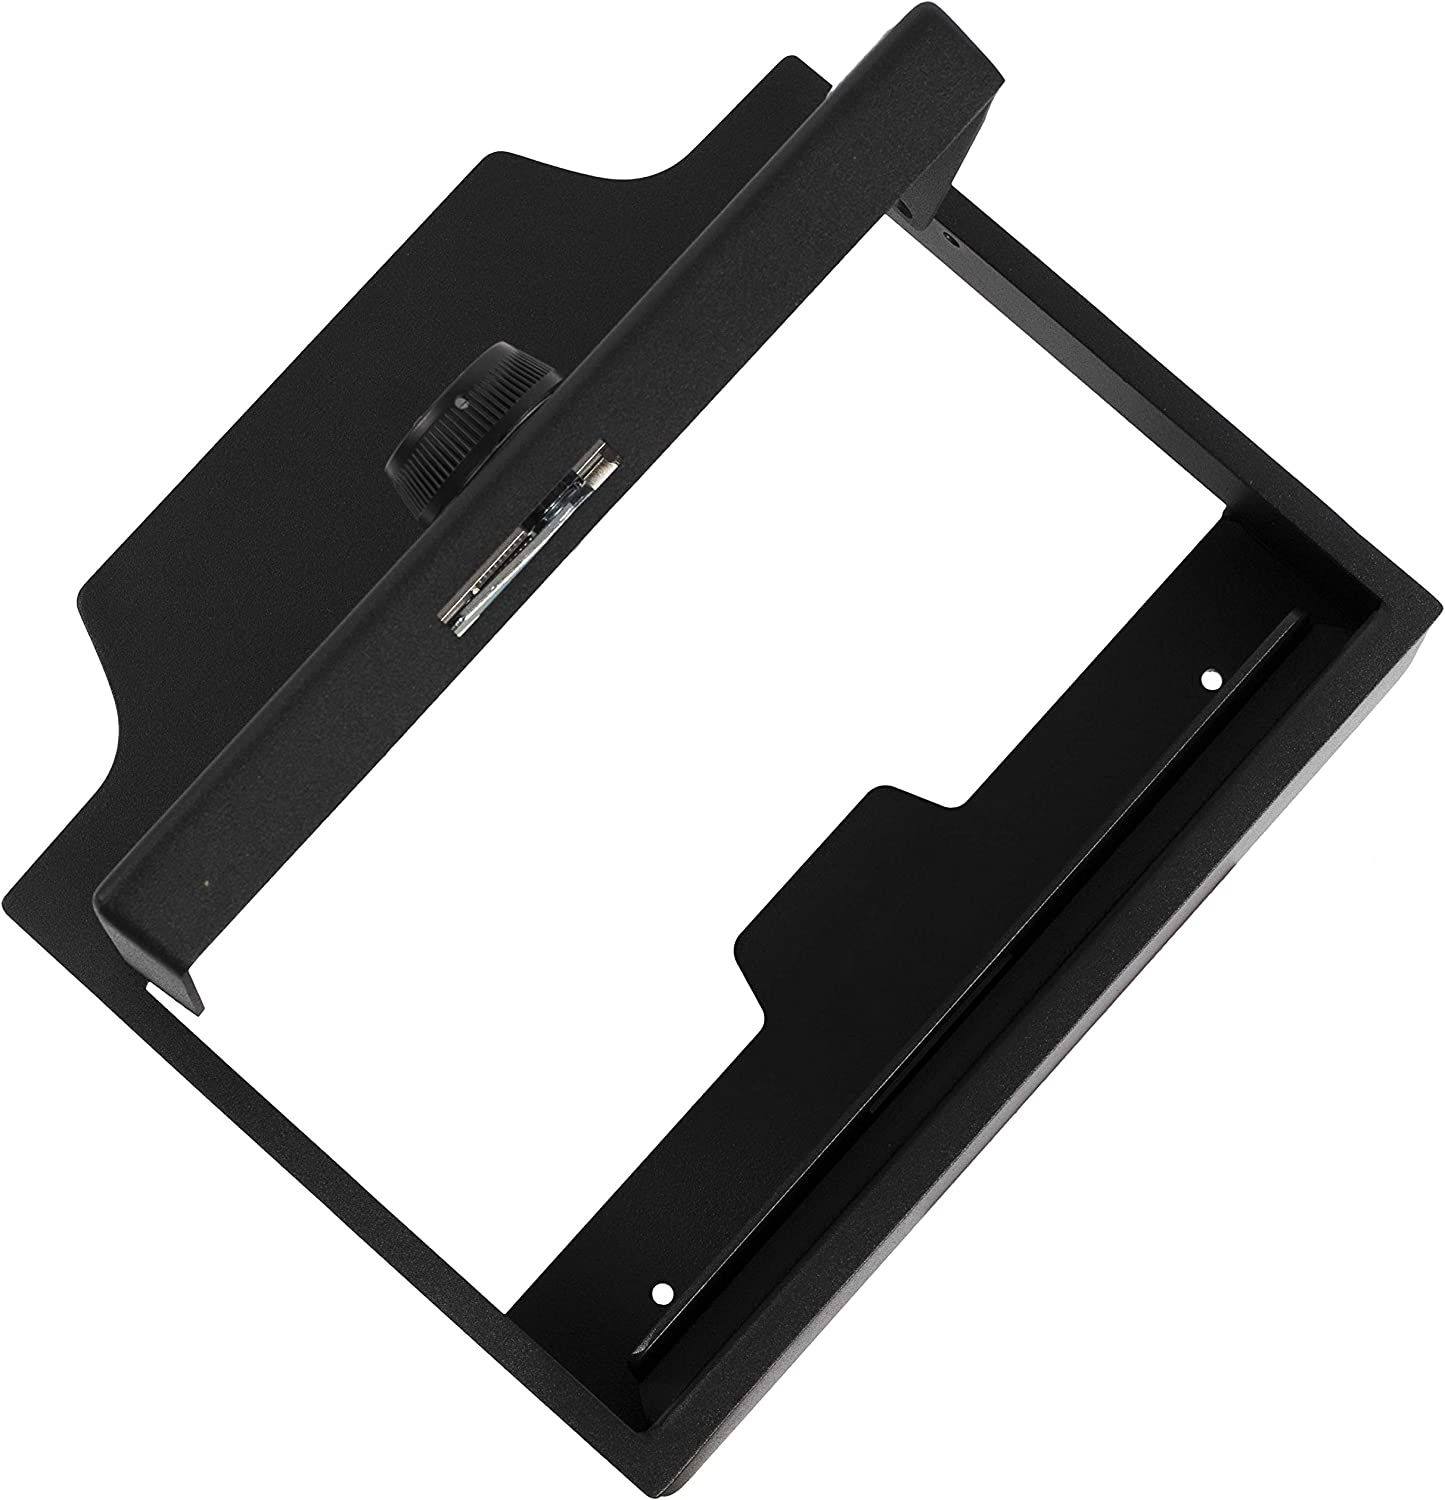 LD2078L Car Safe Compatible With 2019 Dodge Ram Keep Personal Items Secure and Organized in Car Locker Down Console Not the Classic Lower Profile to Fit the Longhorn /& Limited Only